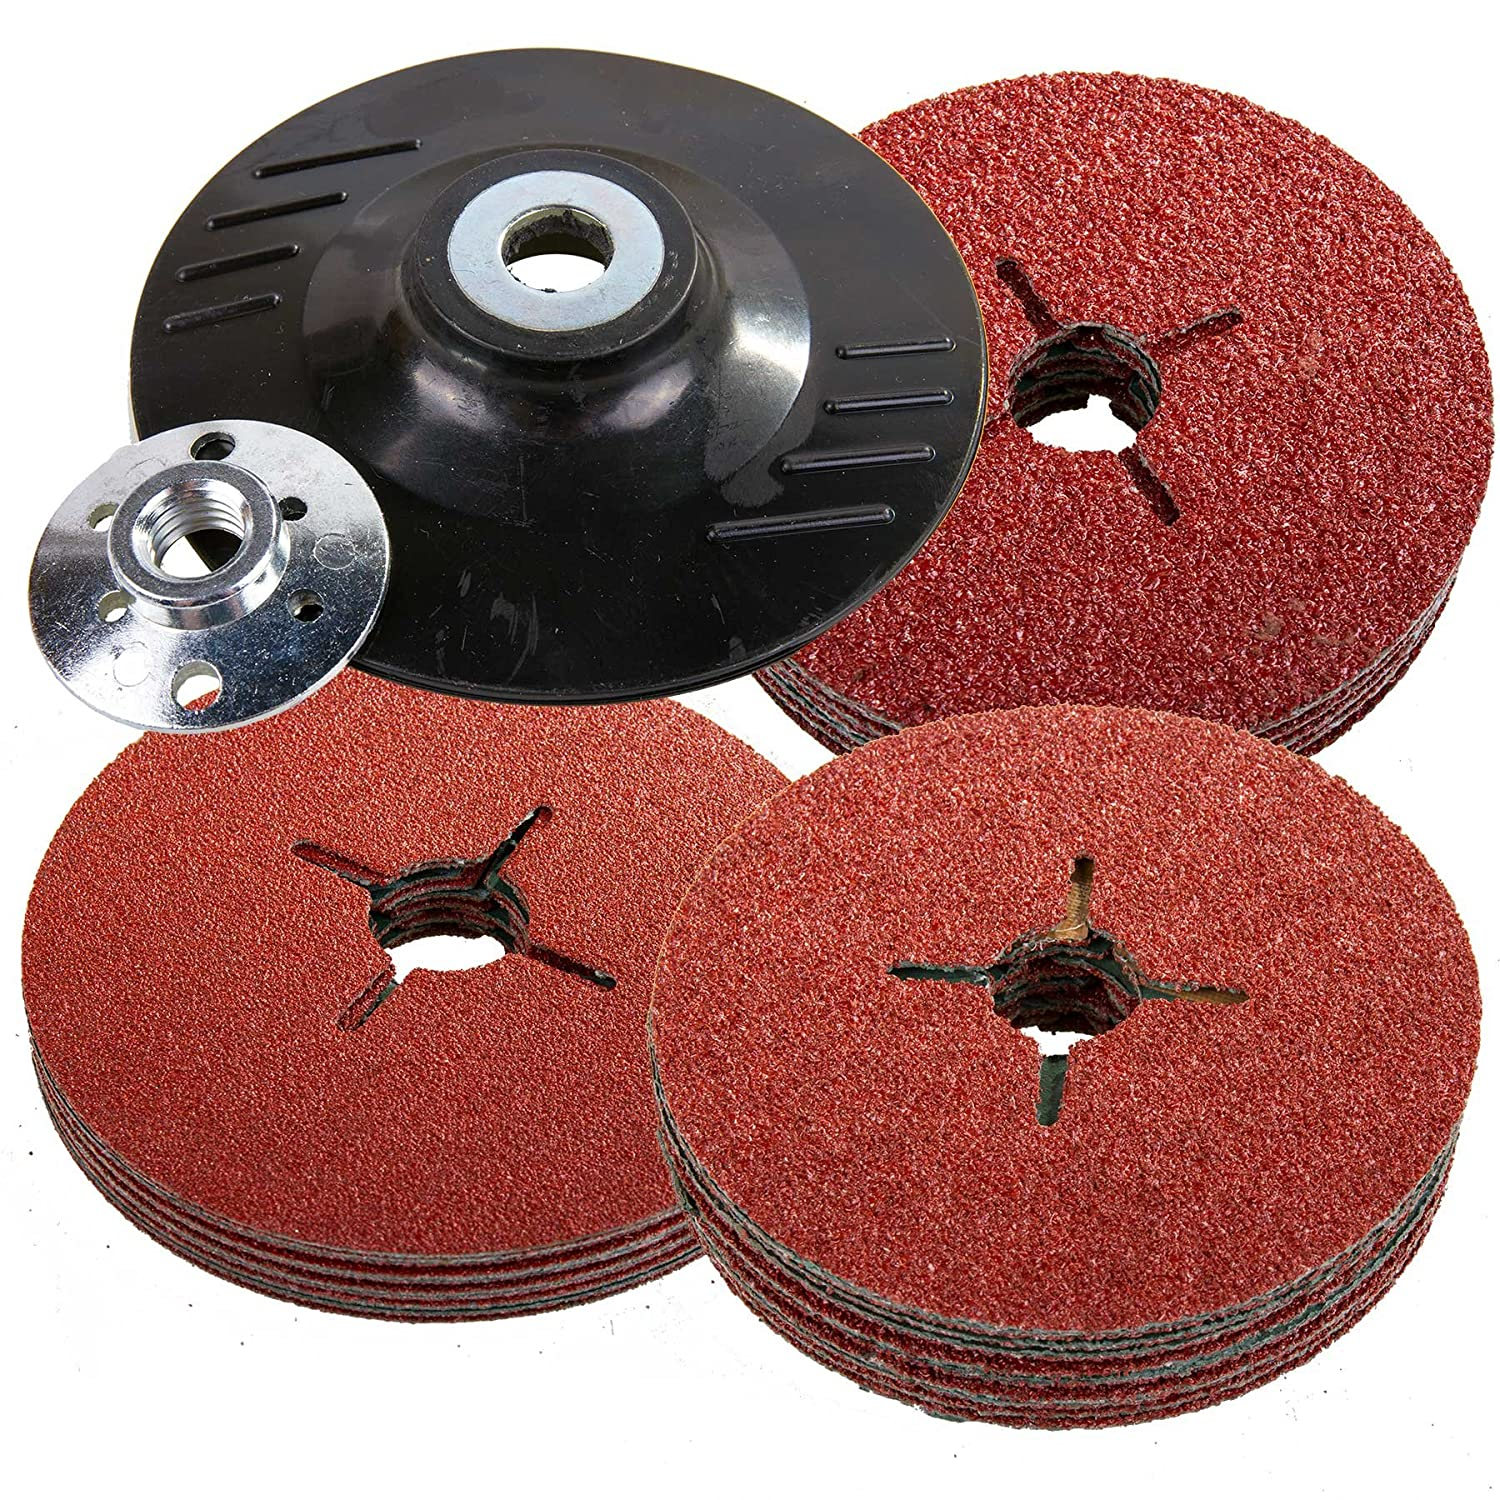 115mm Rubber Backing Pad for Angle Grinder & 30 Fibre Sanding Discs eetools